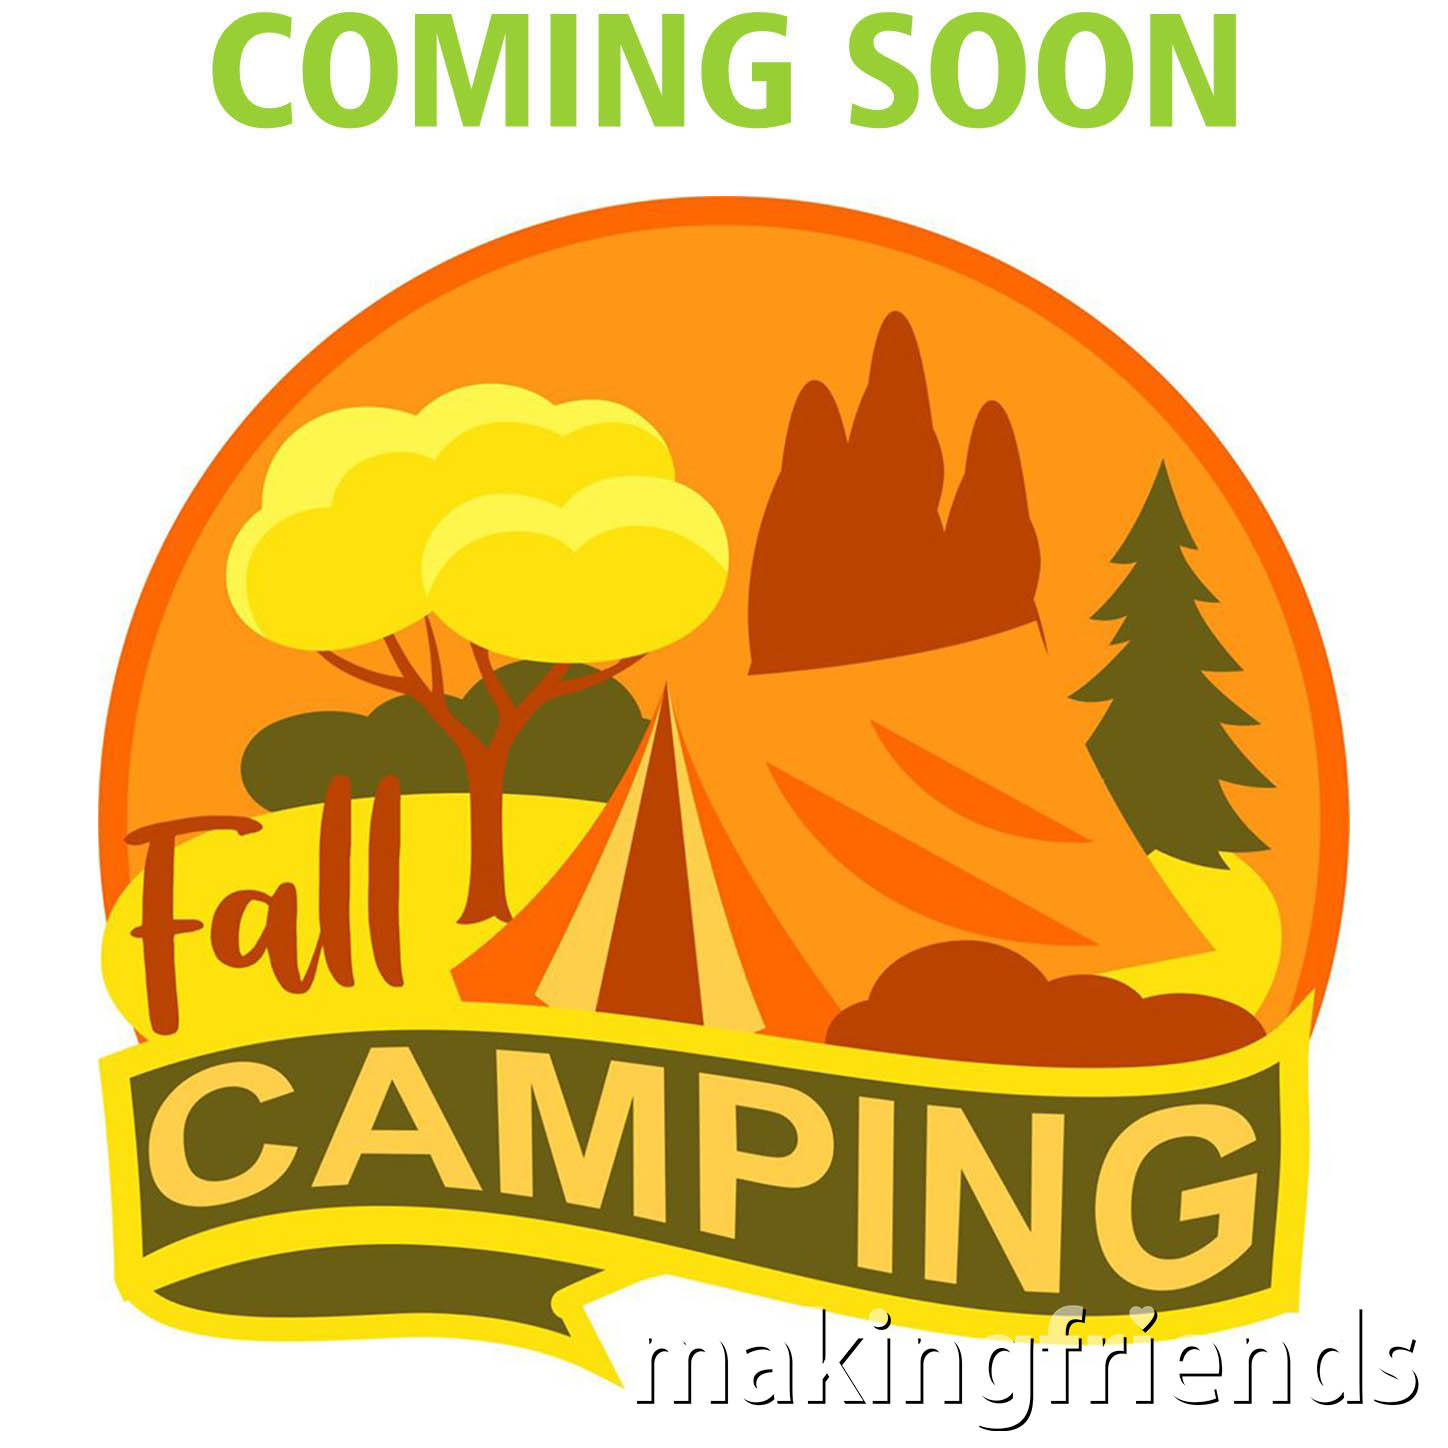 Fall is a wonderful season to take your scout troop camping! Add this fall camping patch from MakingFriends®.com to your collection after this year's trip. #fallcamping #camping #fall #autumn #camp #gscamp #makingfriends #mf #scoutcamping #scouts #girlscouts #trips via @gsleader411